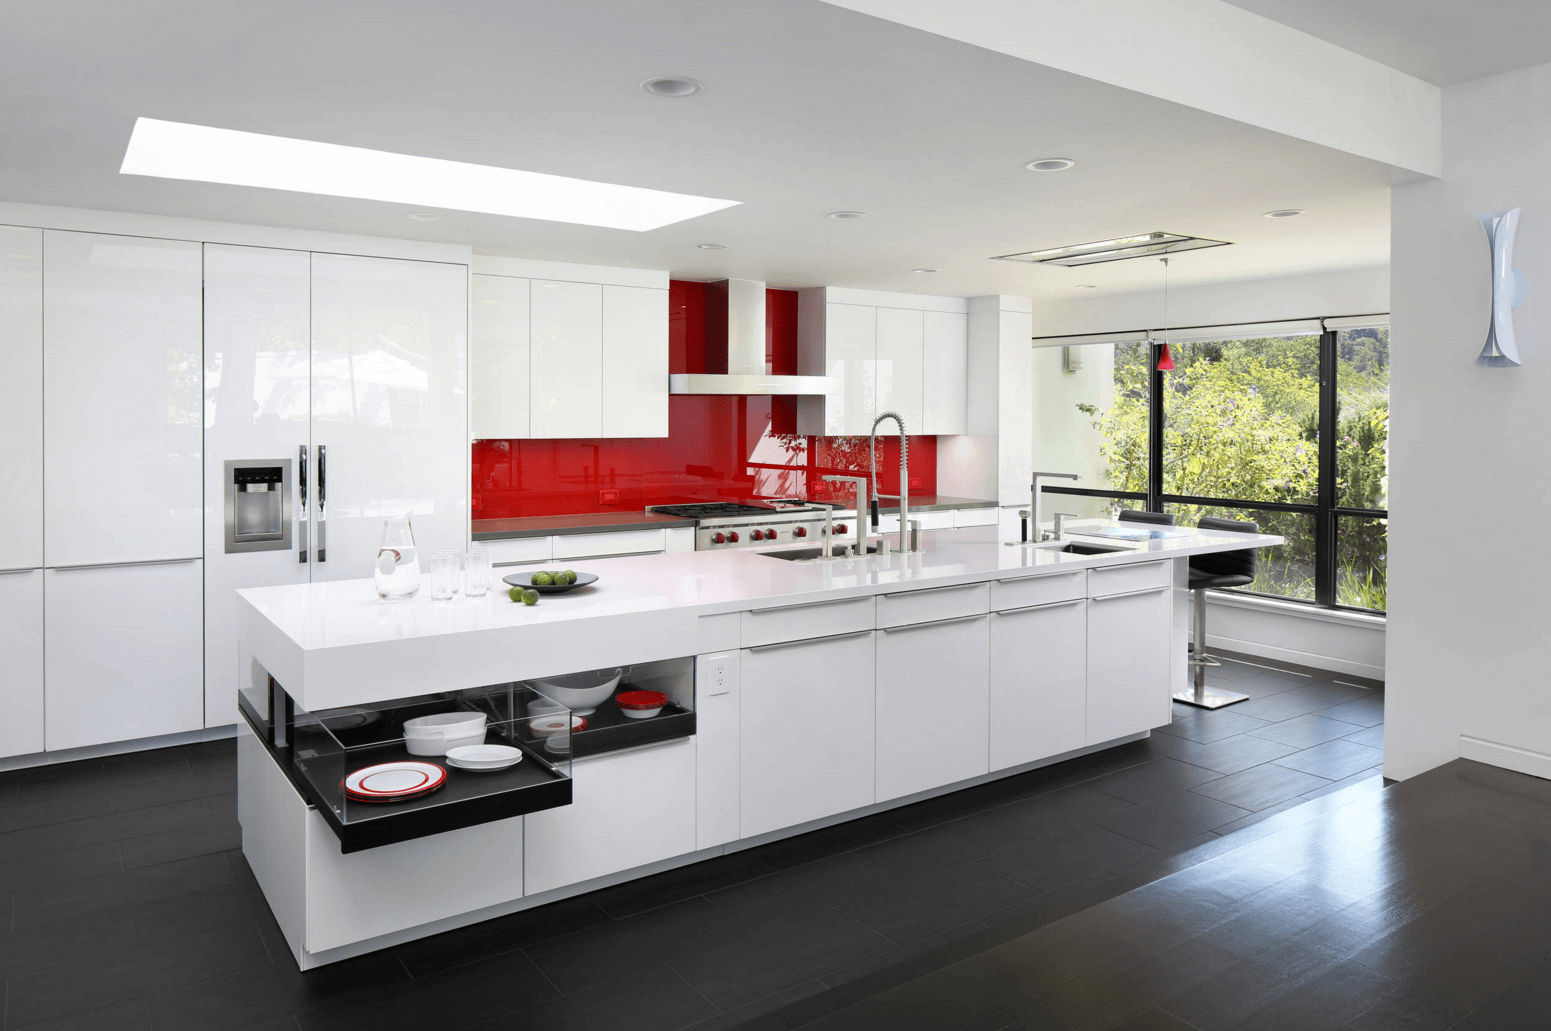 Contemporary Red Backsplash